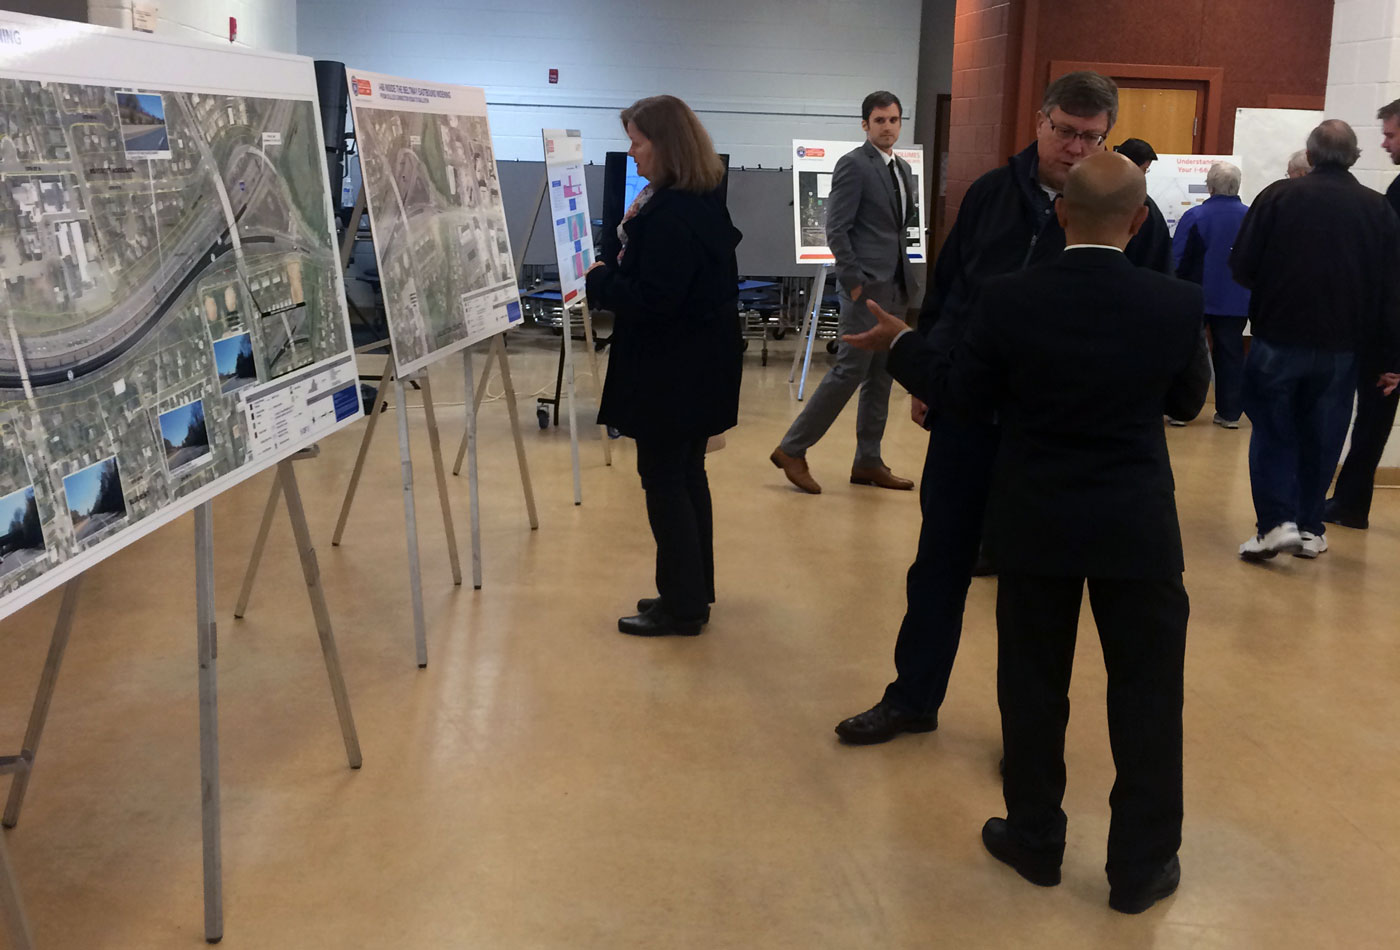 Va. residents voice concerns over I-66 widening